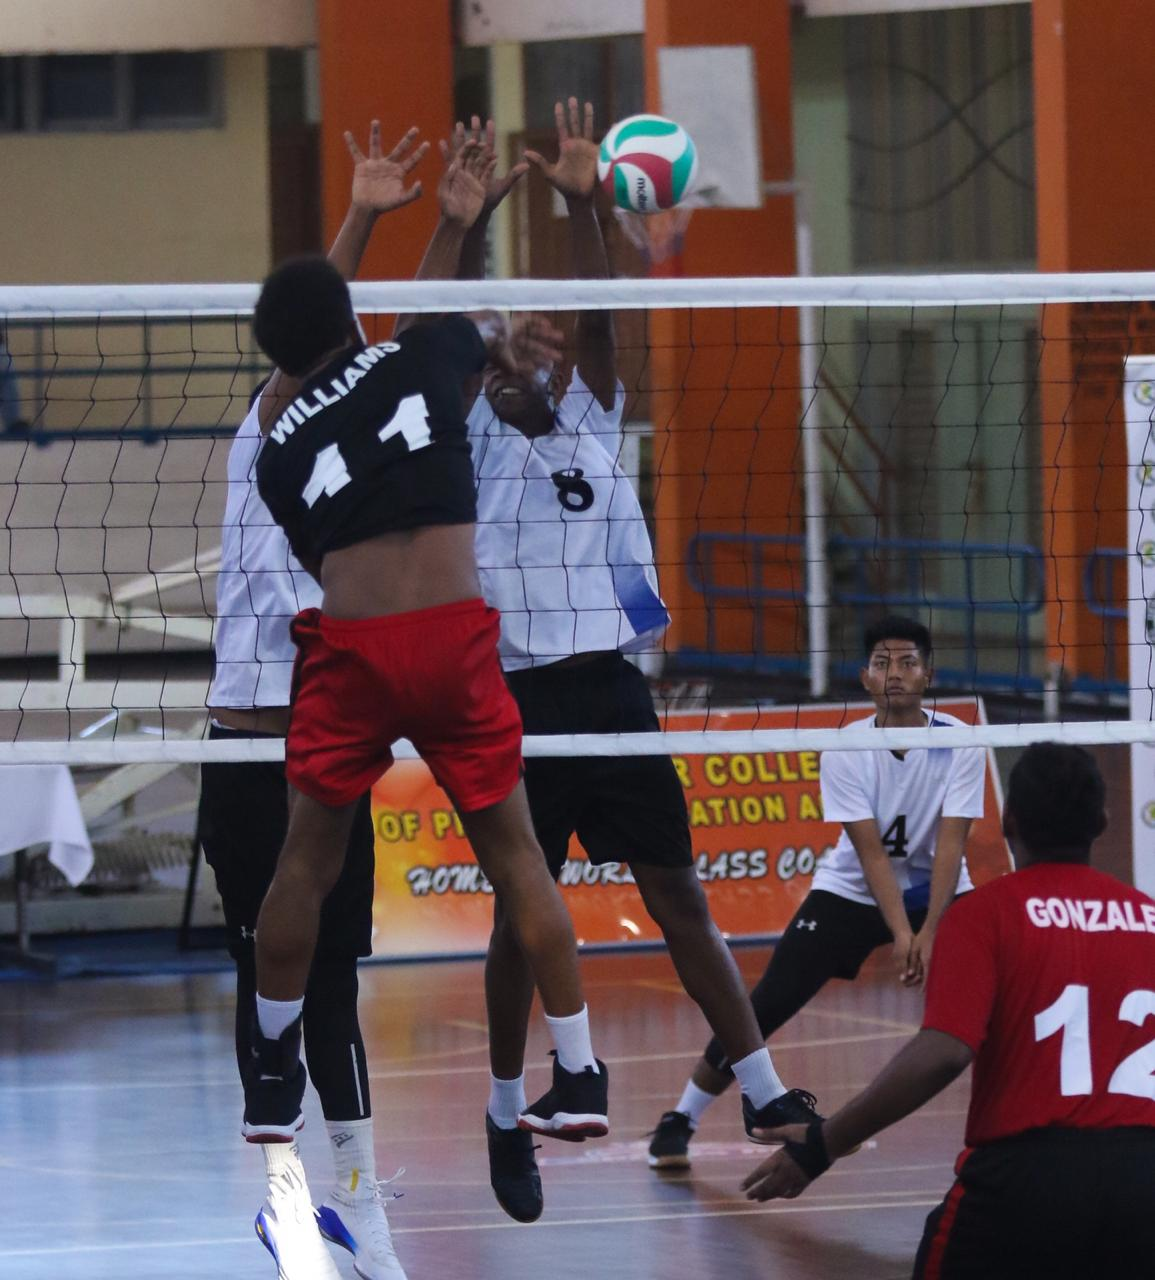 Captain Nicholas Williams spikes a ball against Suriname yesterday at the CAZOVA U19 Boys Championship, St. Catherine, Jamaica. Photo by Sherdon Pierre